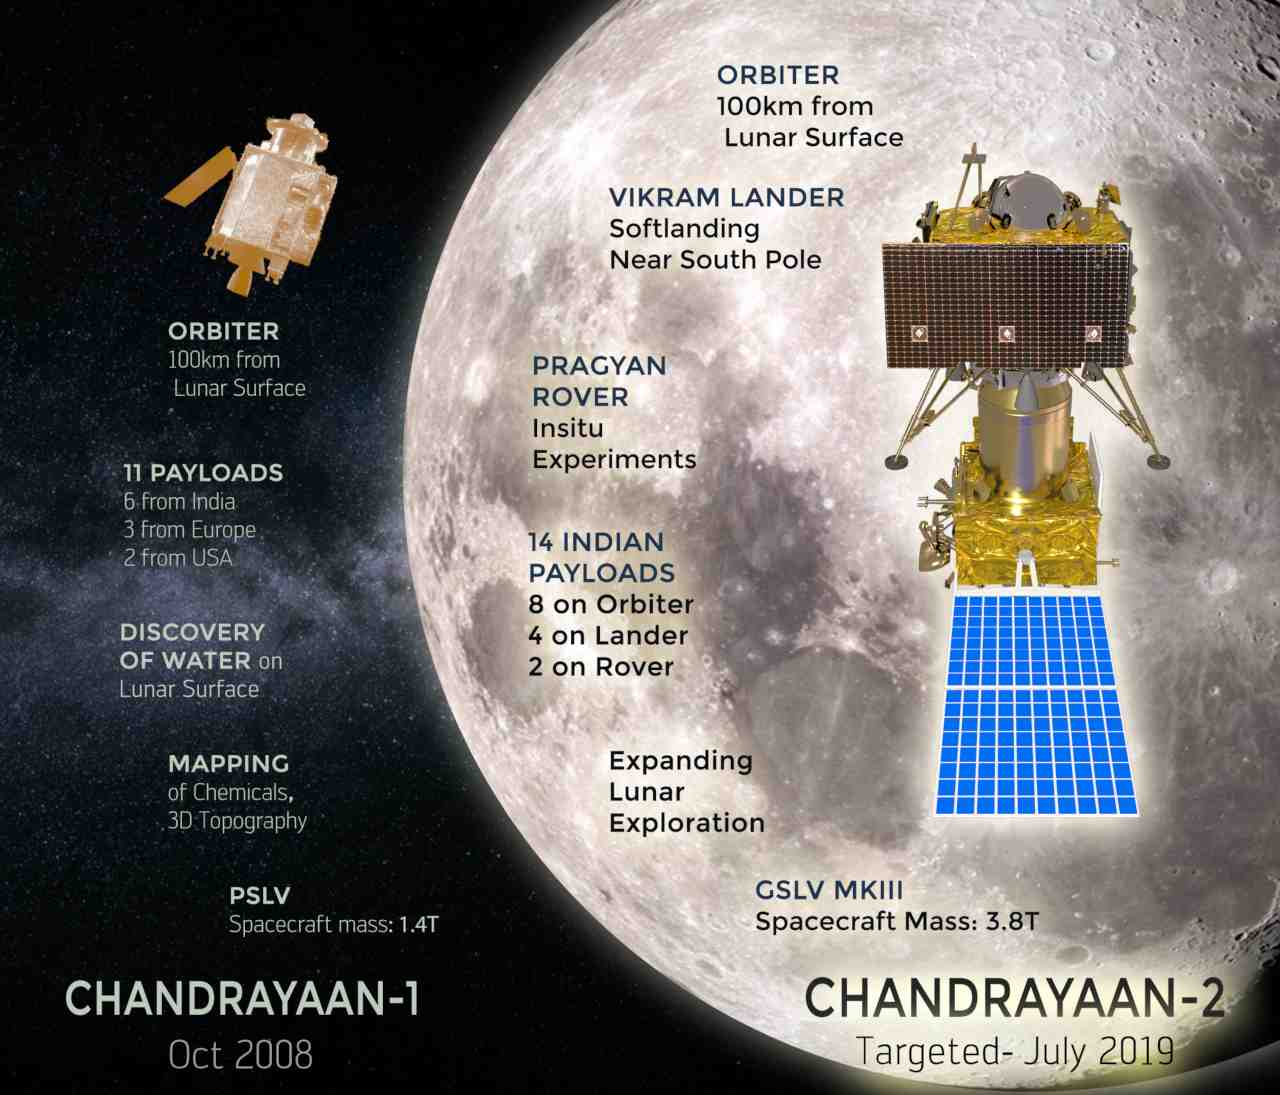 The complexity and challenges of Chandrayaan-2 vs Chandrayaan-1. Image credit: ISRO